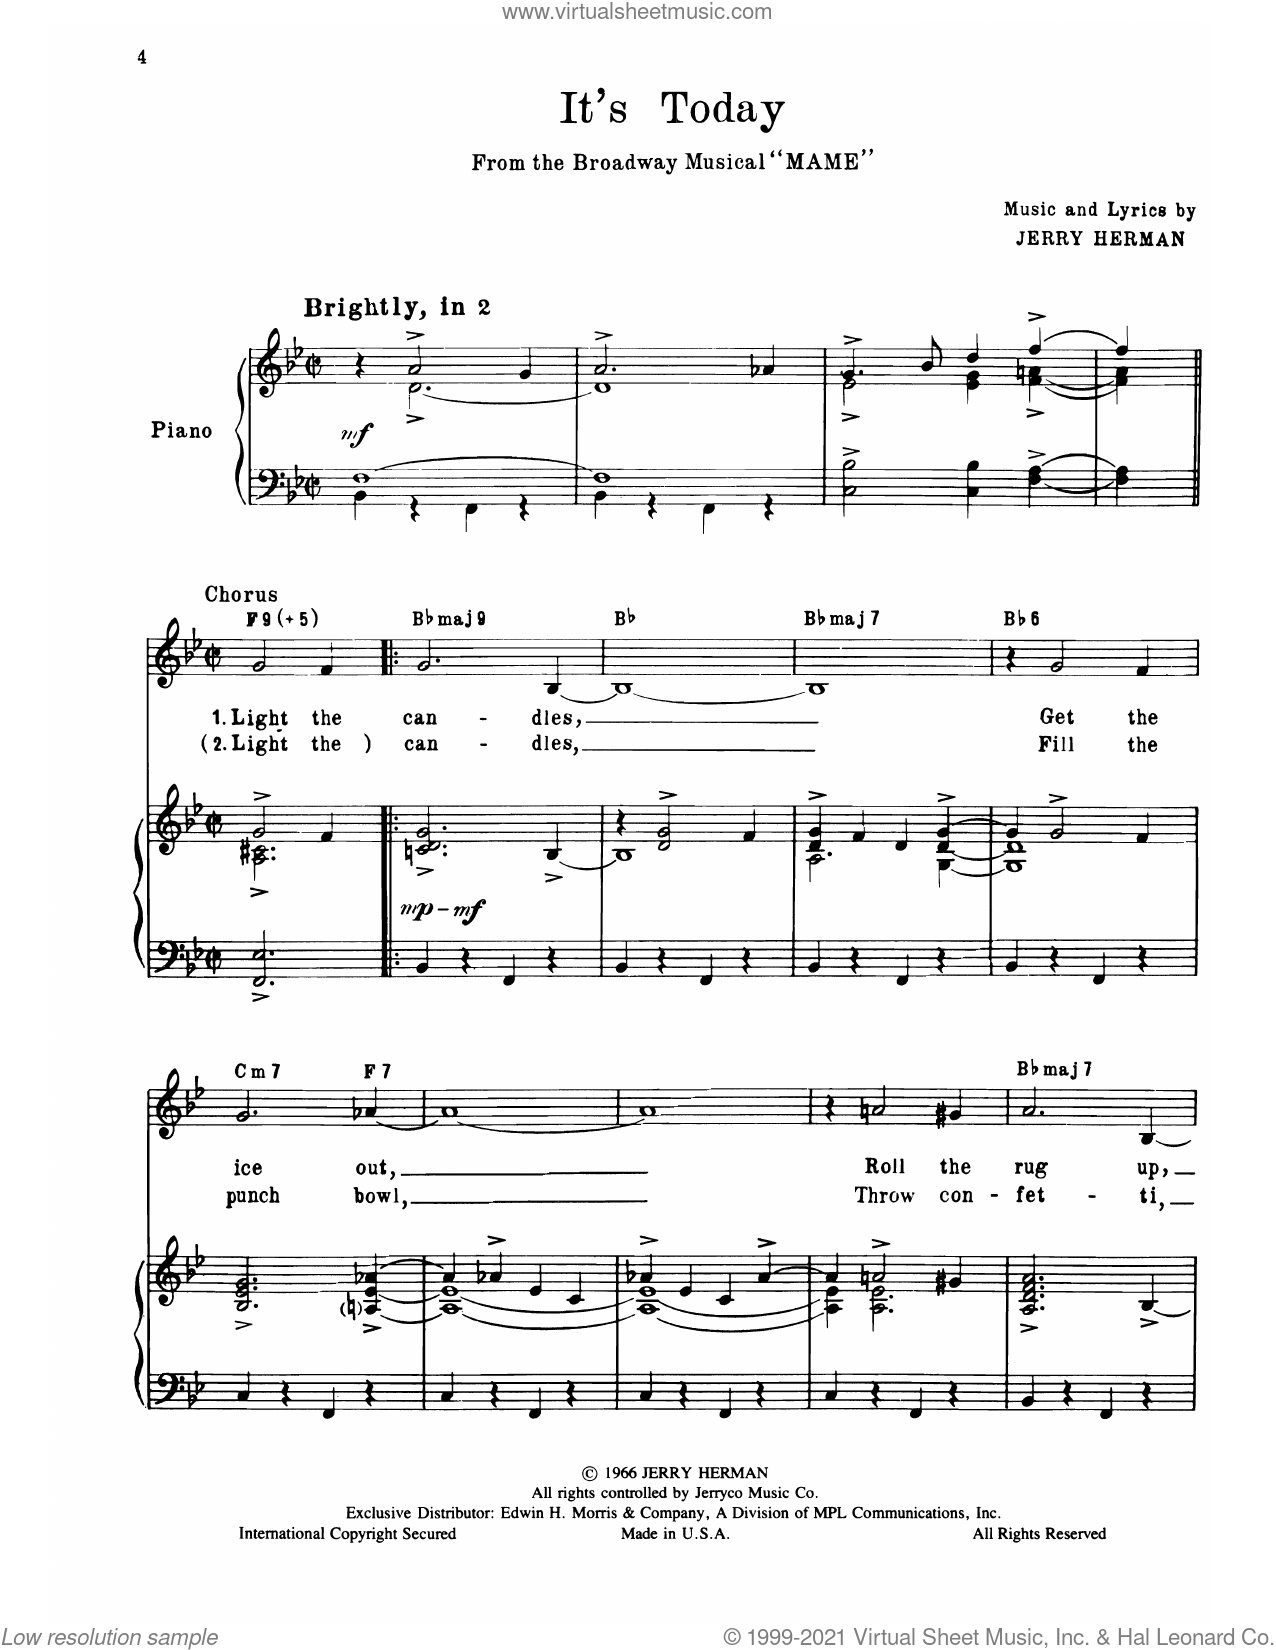 It's Today (from Mame) sheet music for voice, piano or guitar by Jerry Herman, intermediate skill level